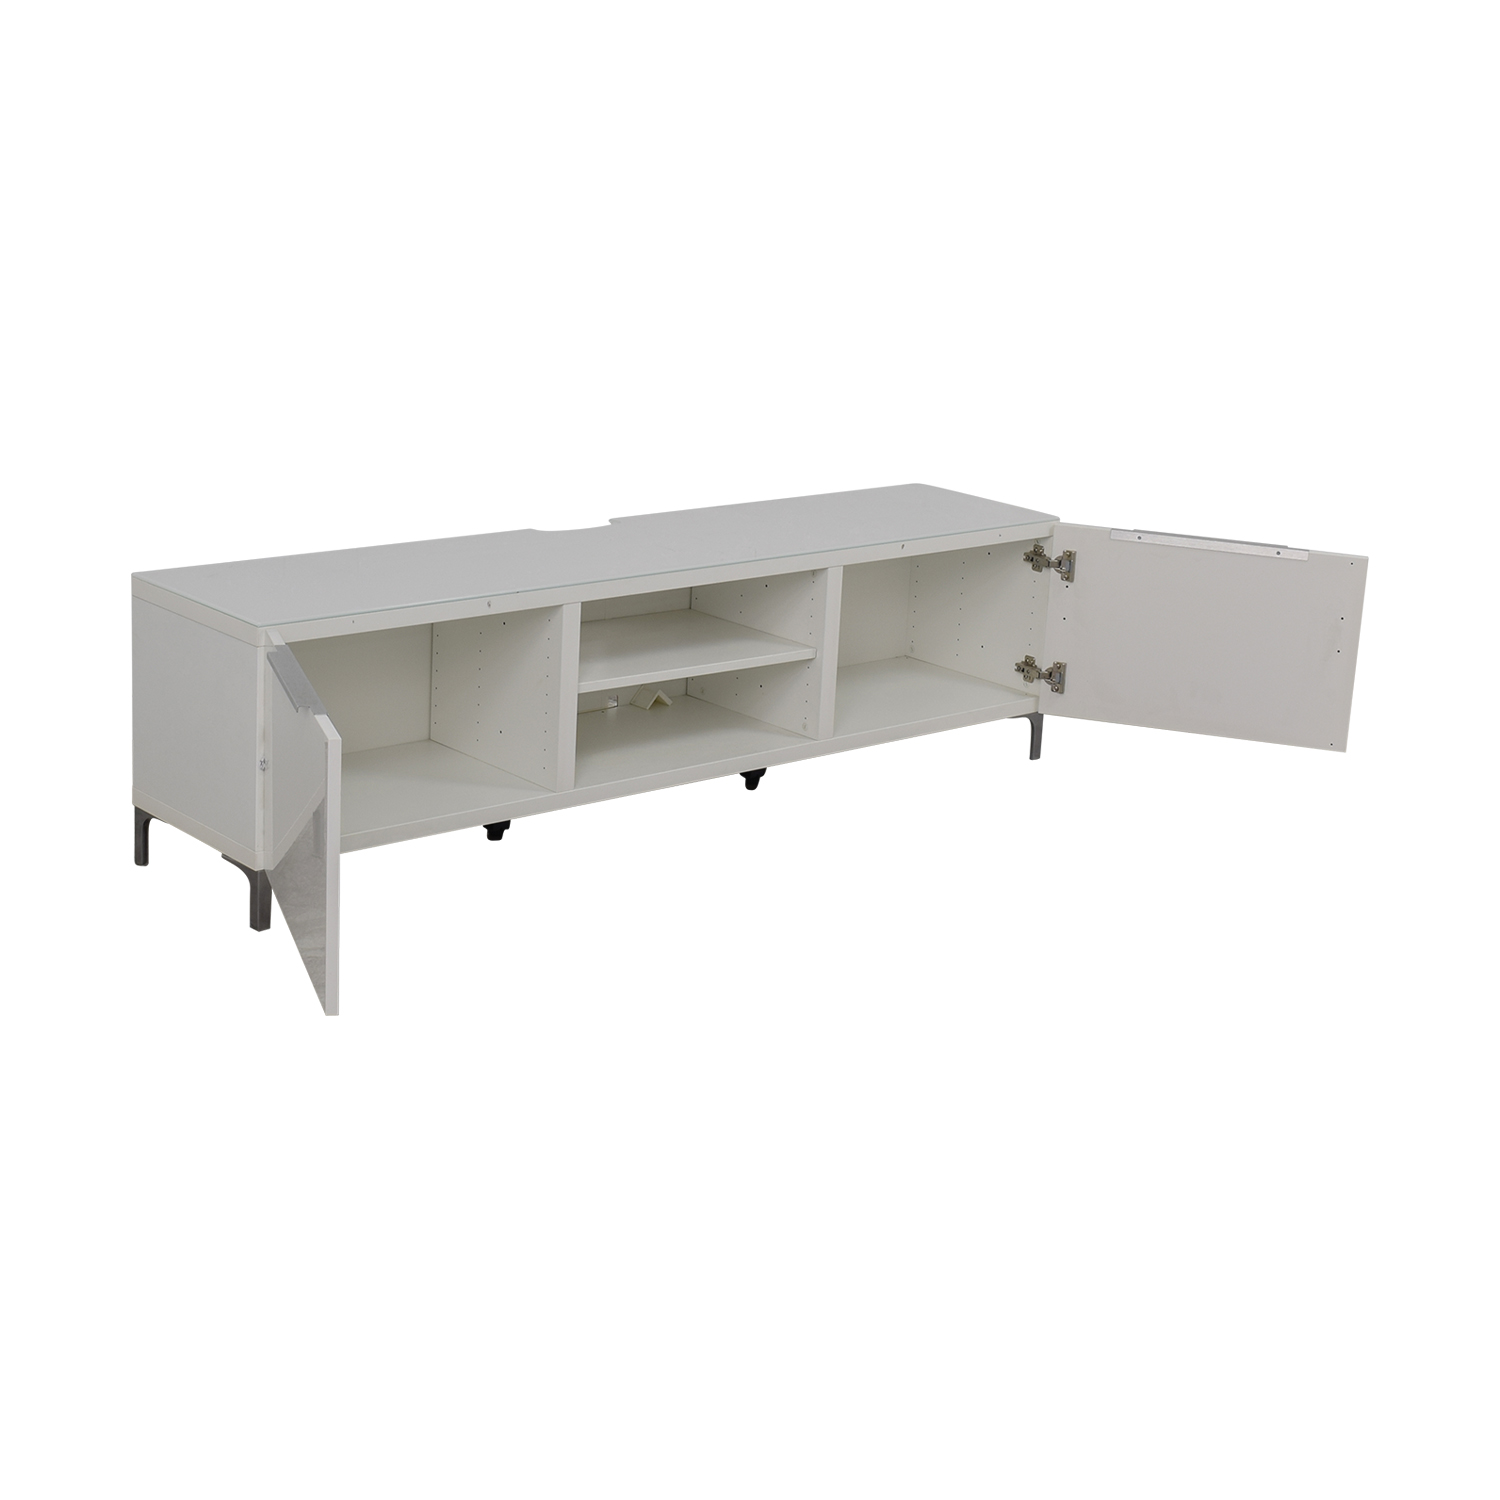 89 off ikea ikea white media console storage